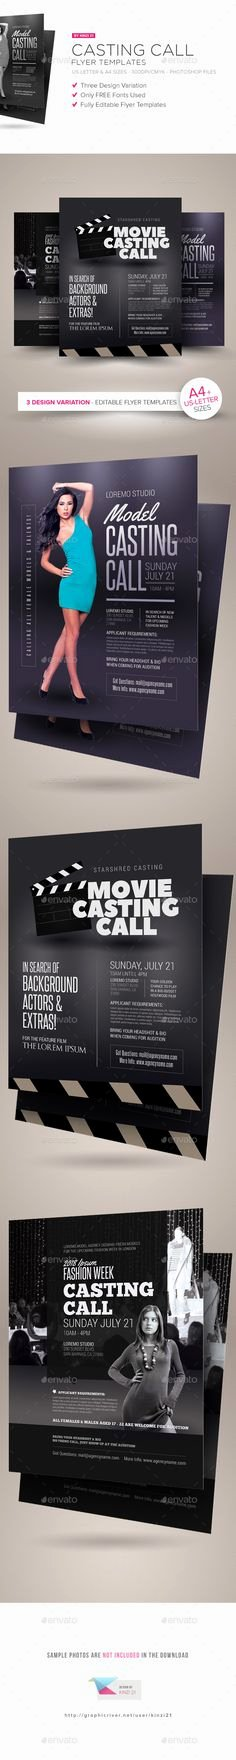 Casting Call Flyer Template Beautiful Multiple Birthday Bash Flyer Template